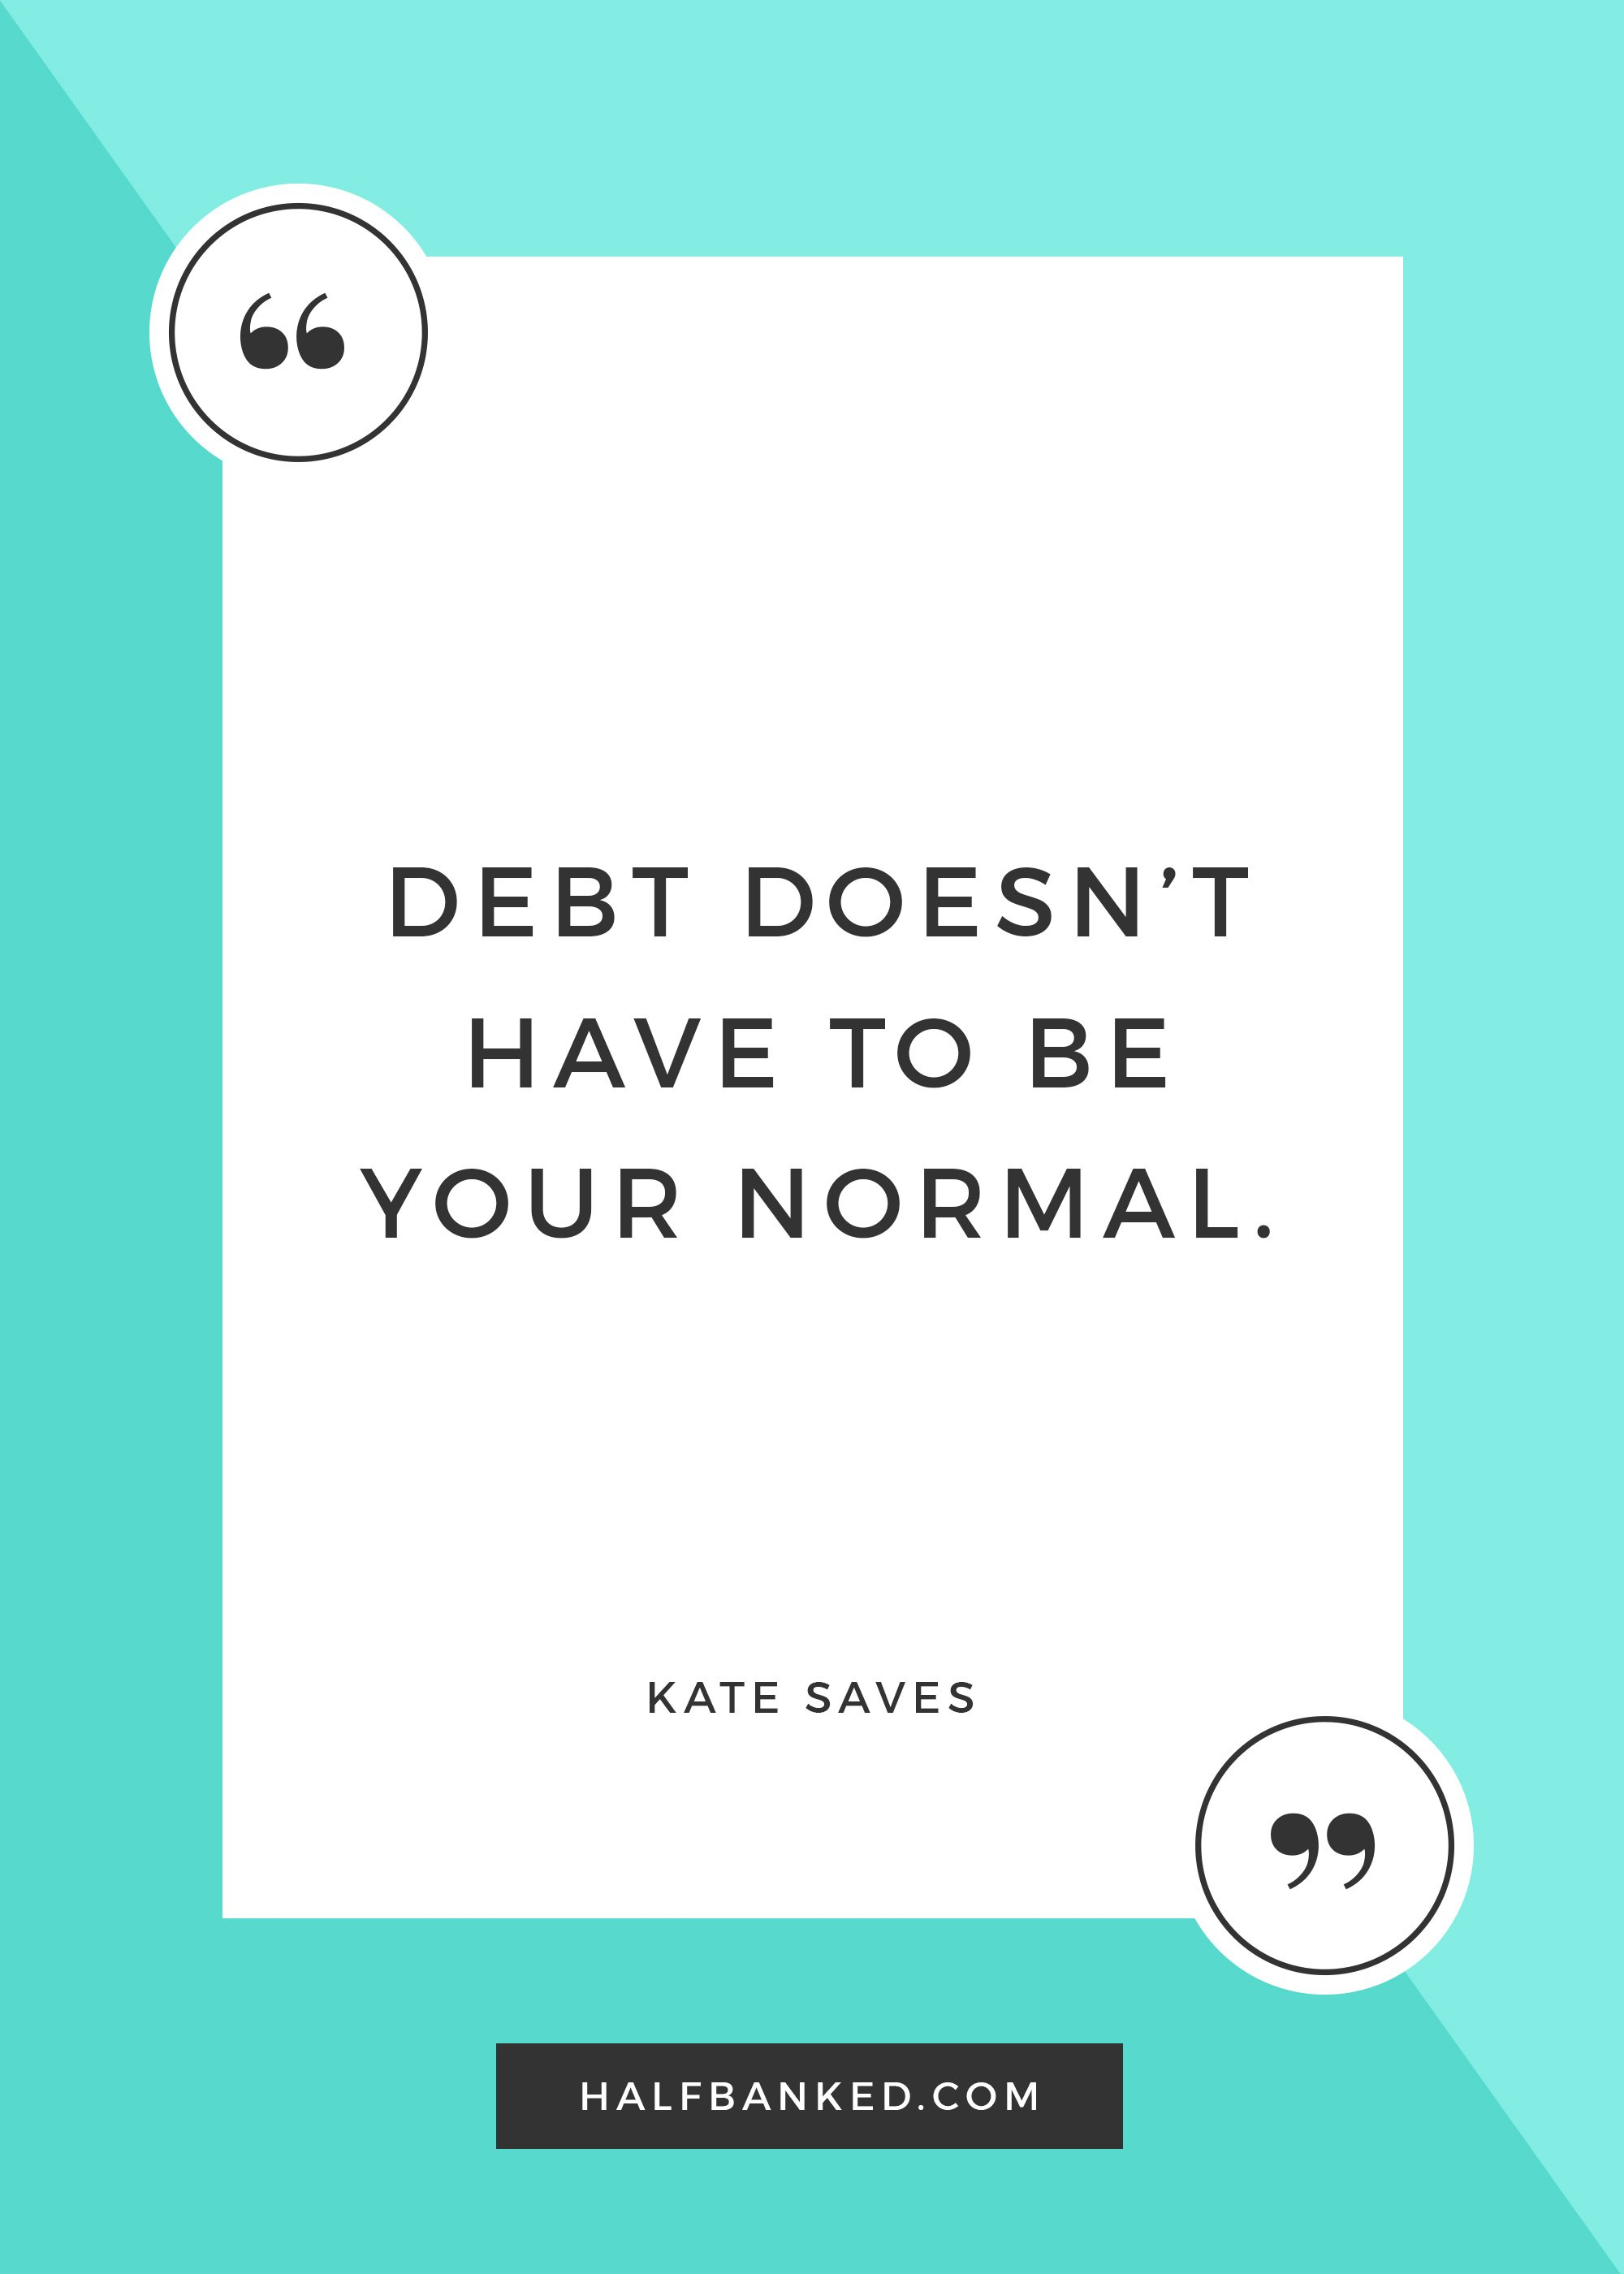 """Debt doesn't have to be your normal."" - Kate Saves"